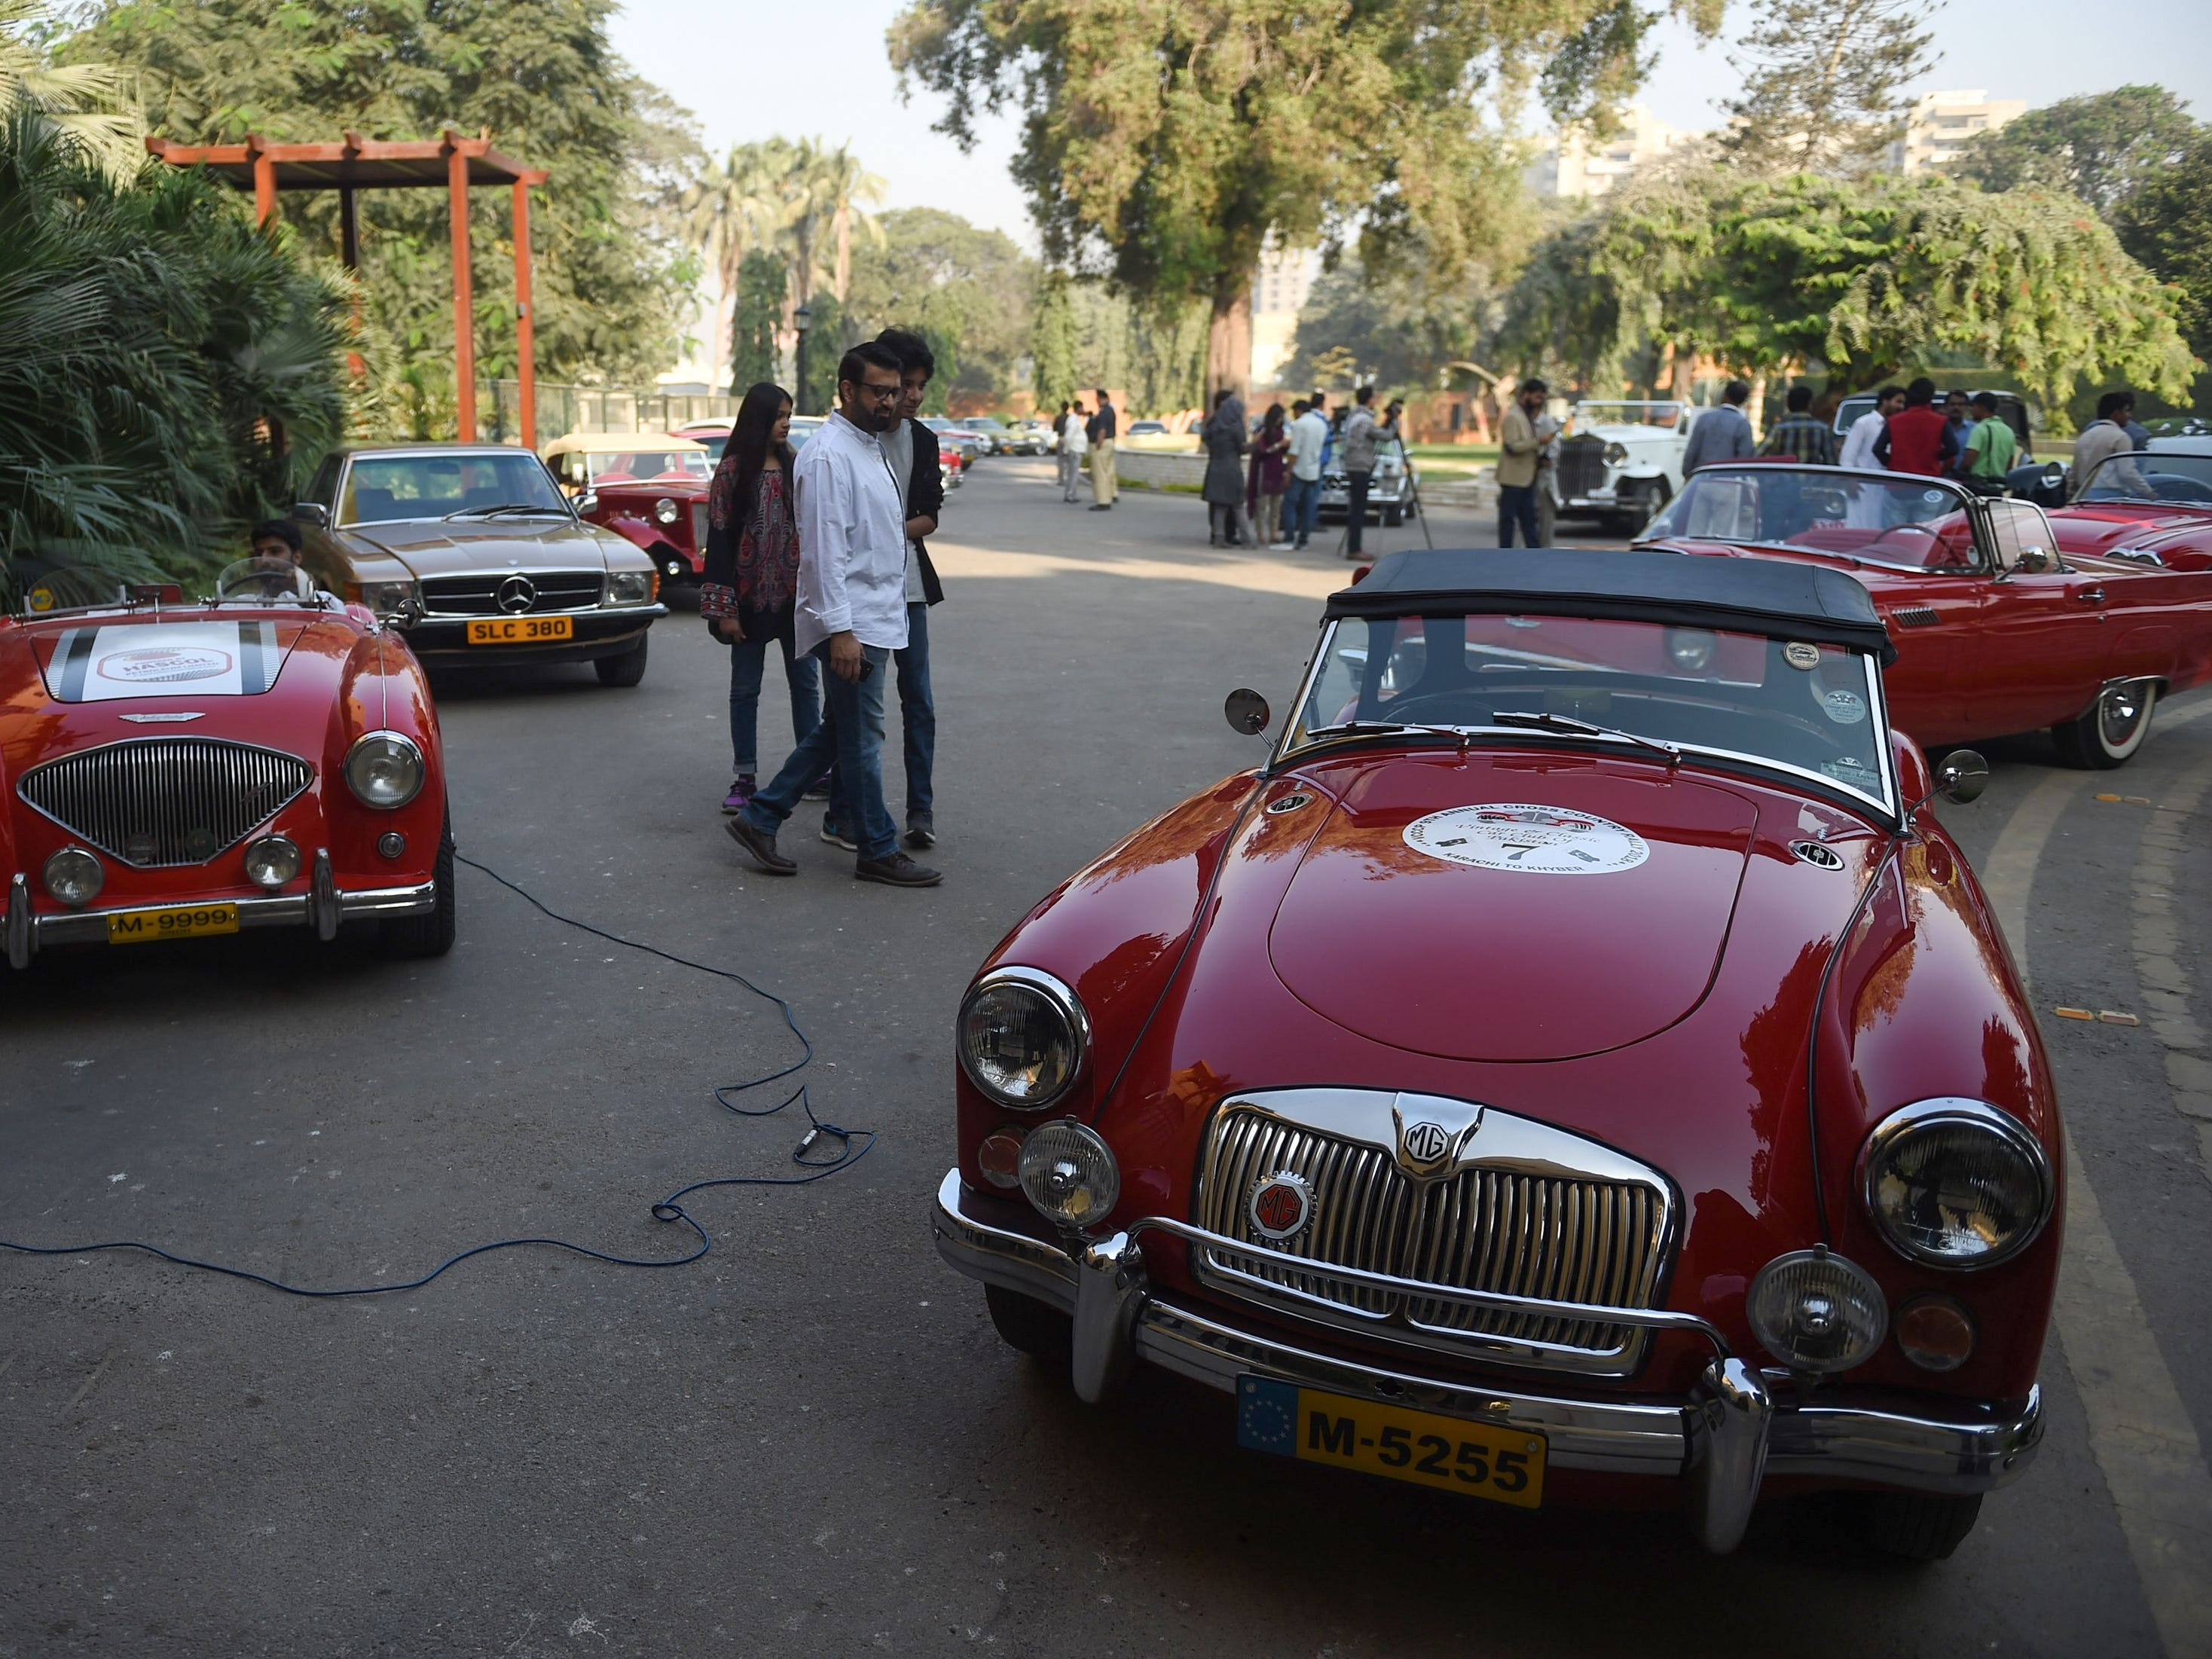 Visitors look at vintage cars during the annual ninth cross country rally organized by the Vintage and Classic Car Club of Pakistan (VCCCP) in Karachi on December 1, 2018. (Photo by RIZWAN TABASSUM / AFP)RIZWAN TABASSUM/AFP/Getty Images ORIG FILE ID: AFP_1B93X5